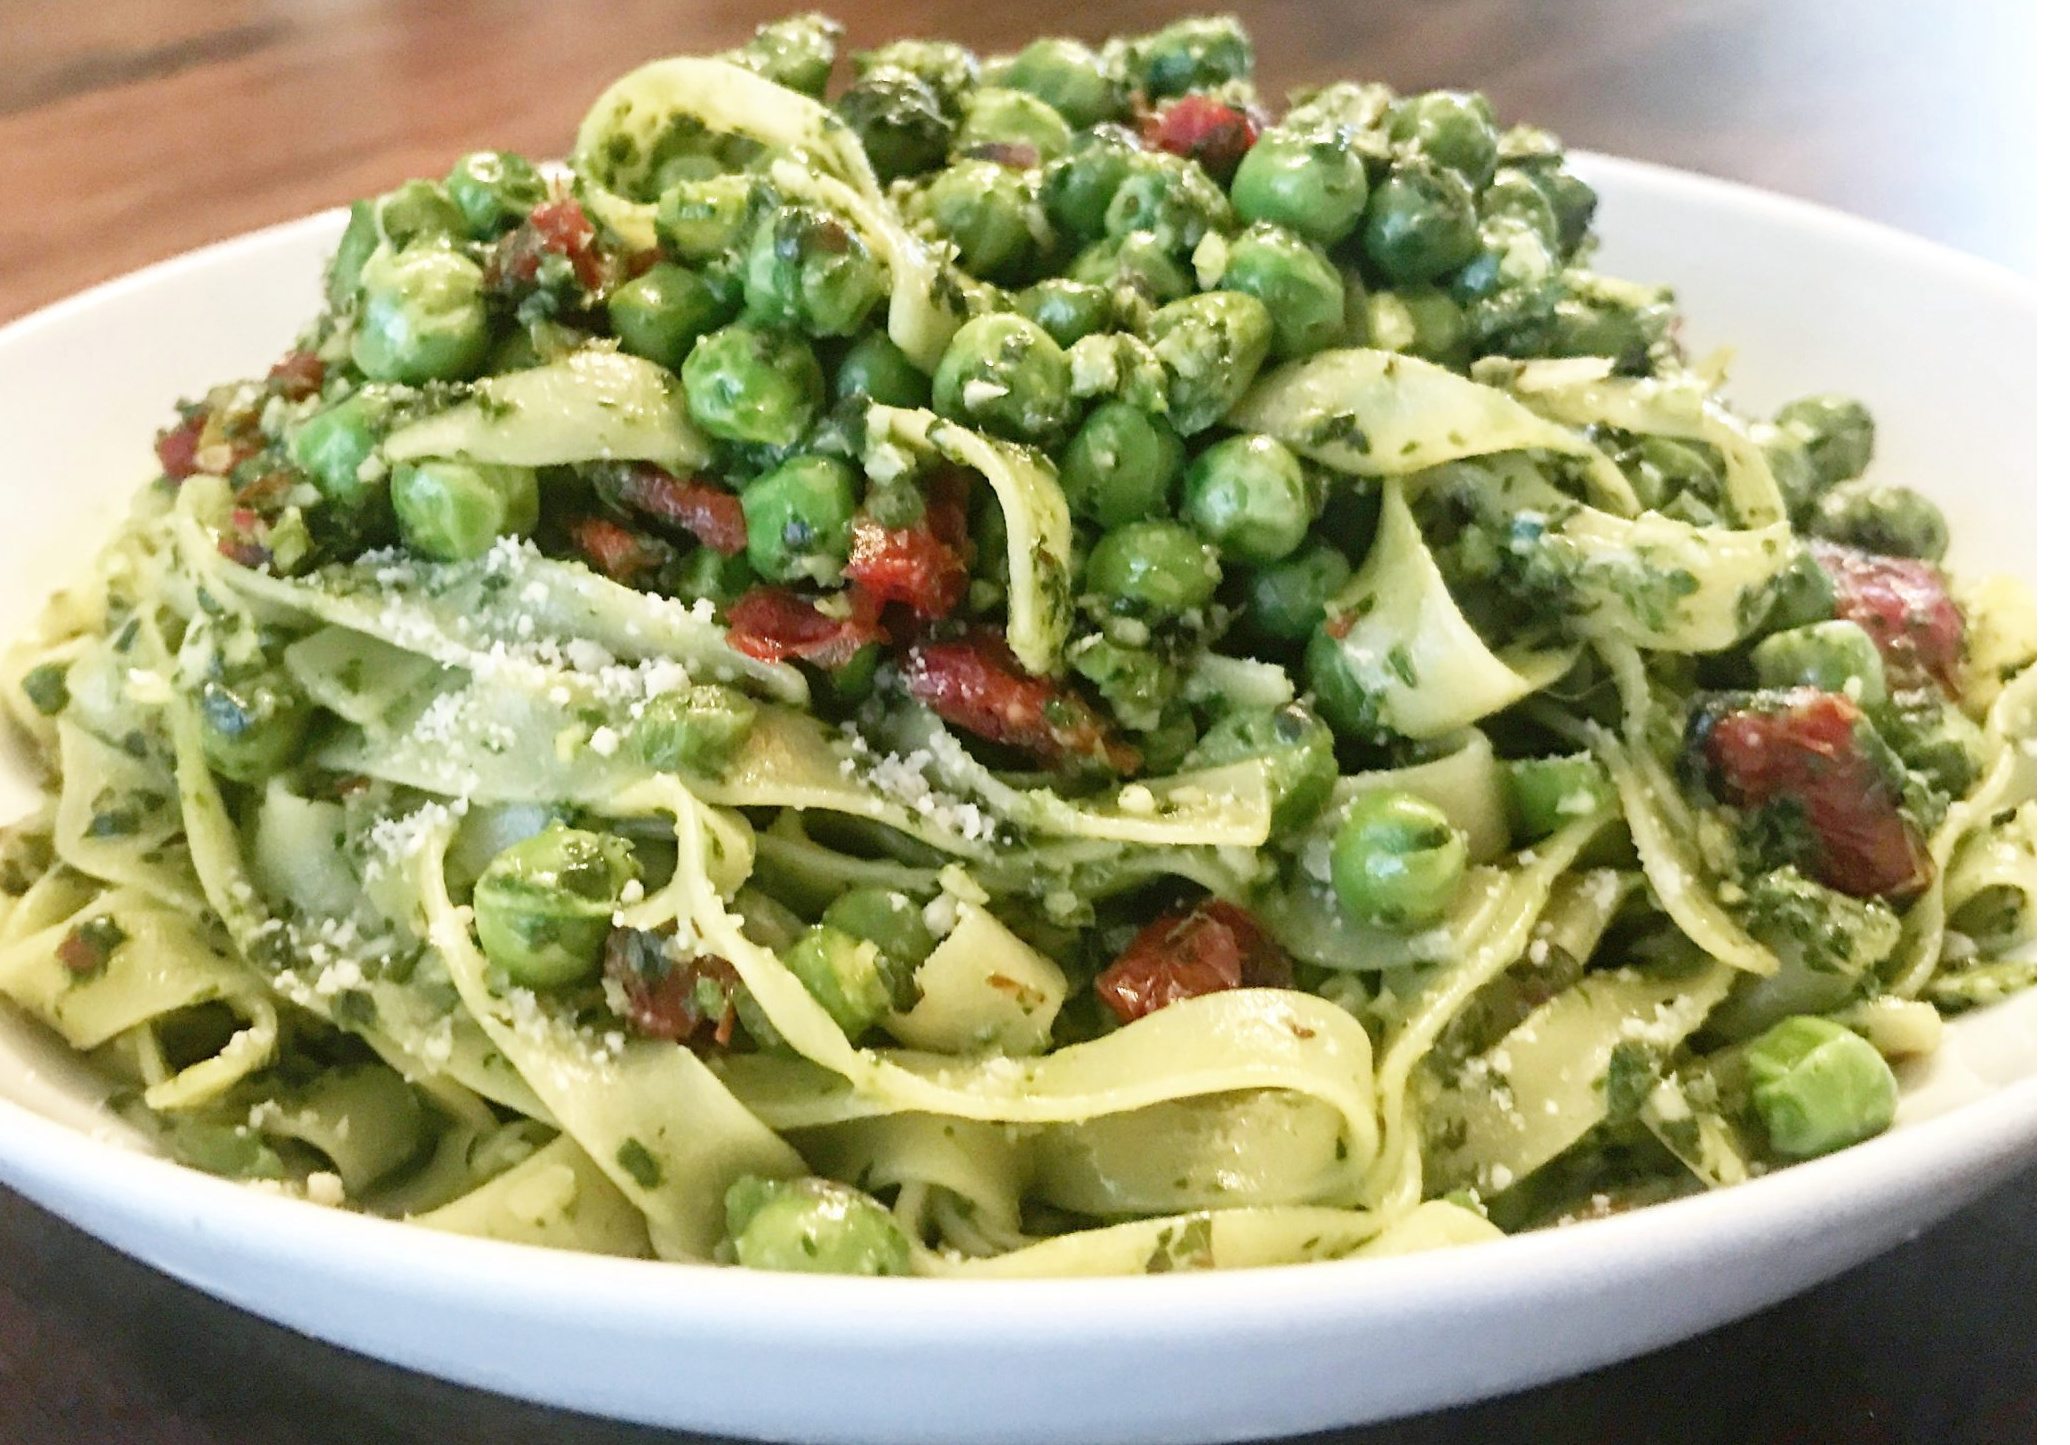 Springtime Pesto Fettuccine - Asparagus, peas, sun-dried tomatoes, and pesto make for a delicious springtime (anytime!) pasta dinner. Dairy-free and Vegan. via @thiswifecooks